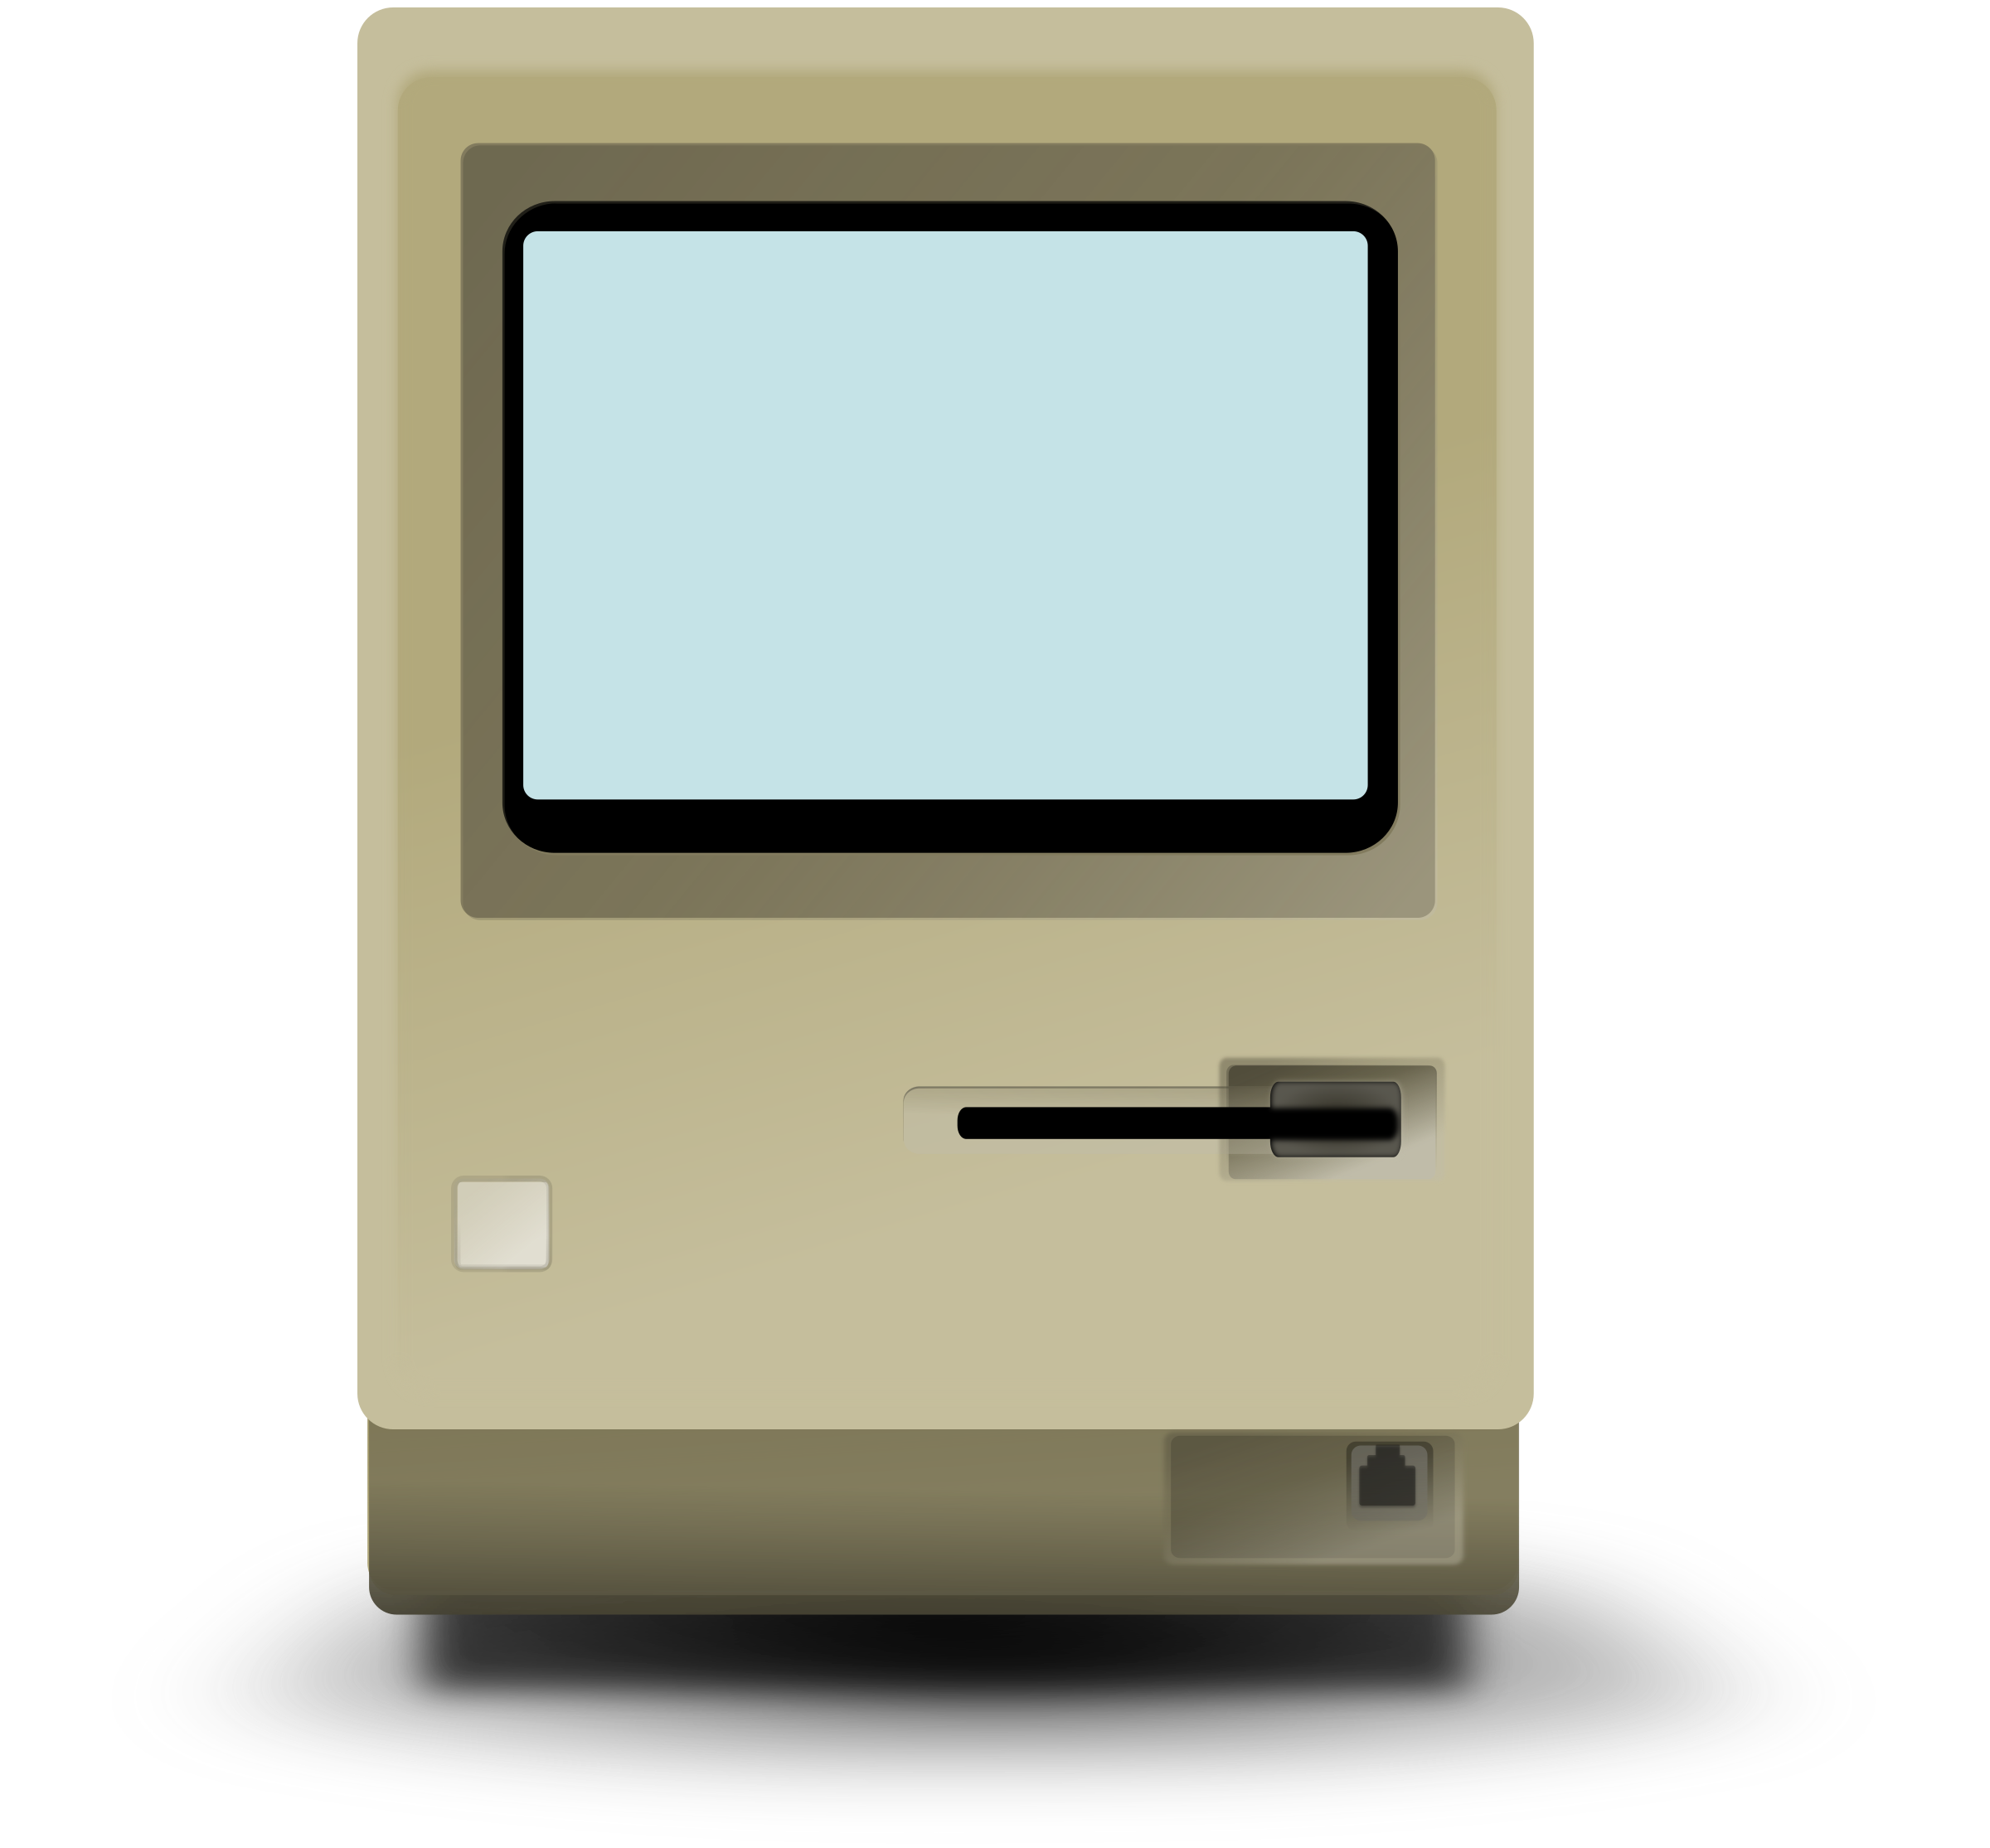 image transparent stock Mac clipart. Living with the new.